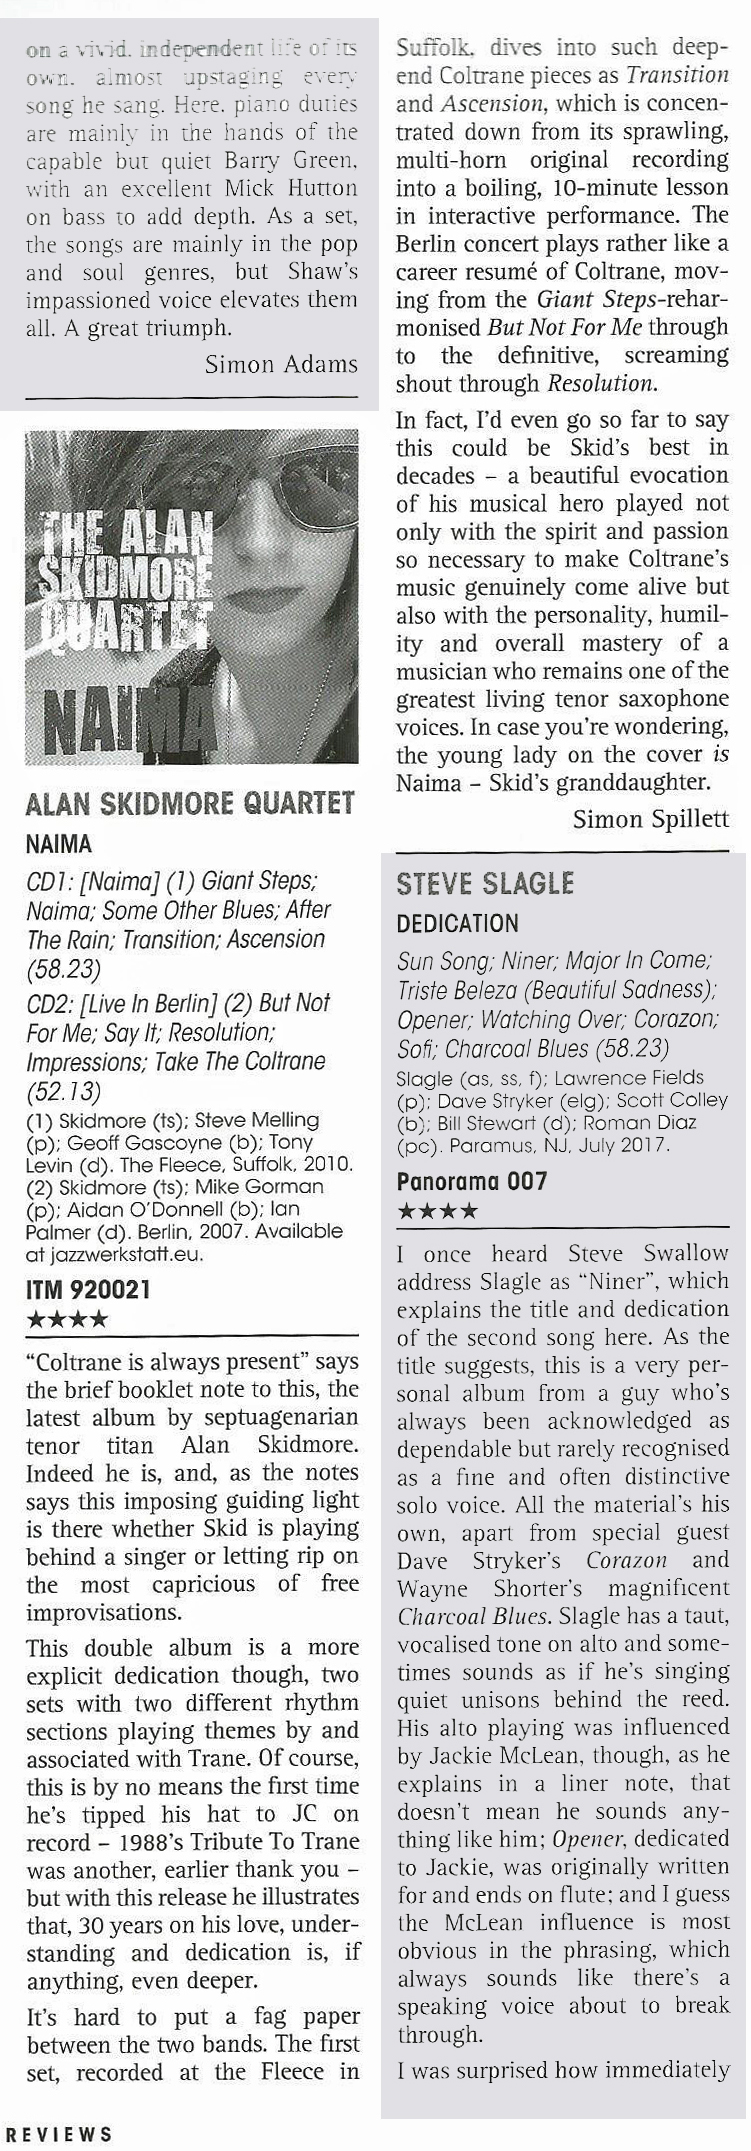 Jazz Journal Naima review